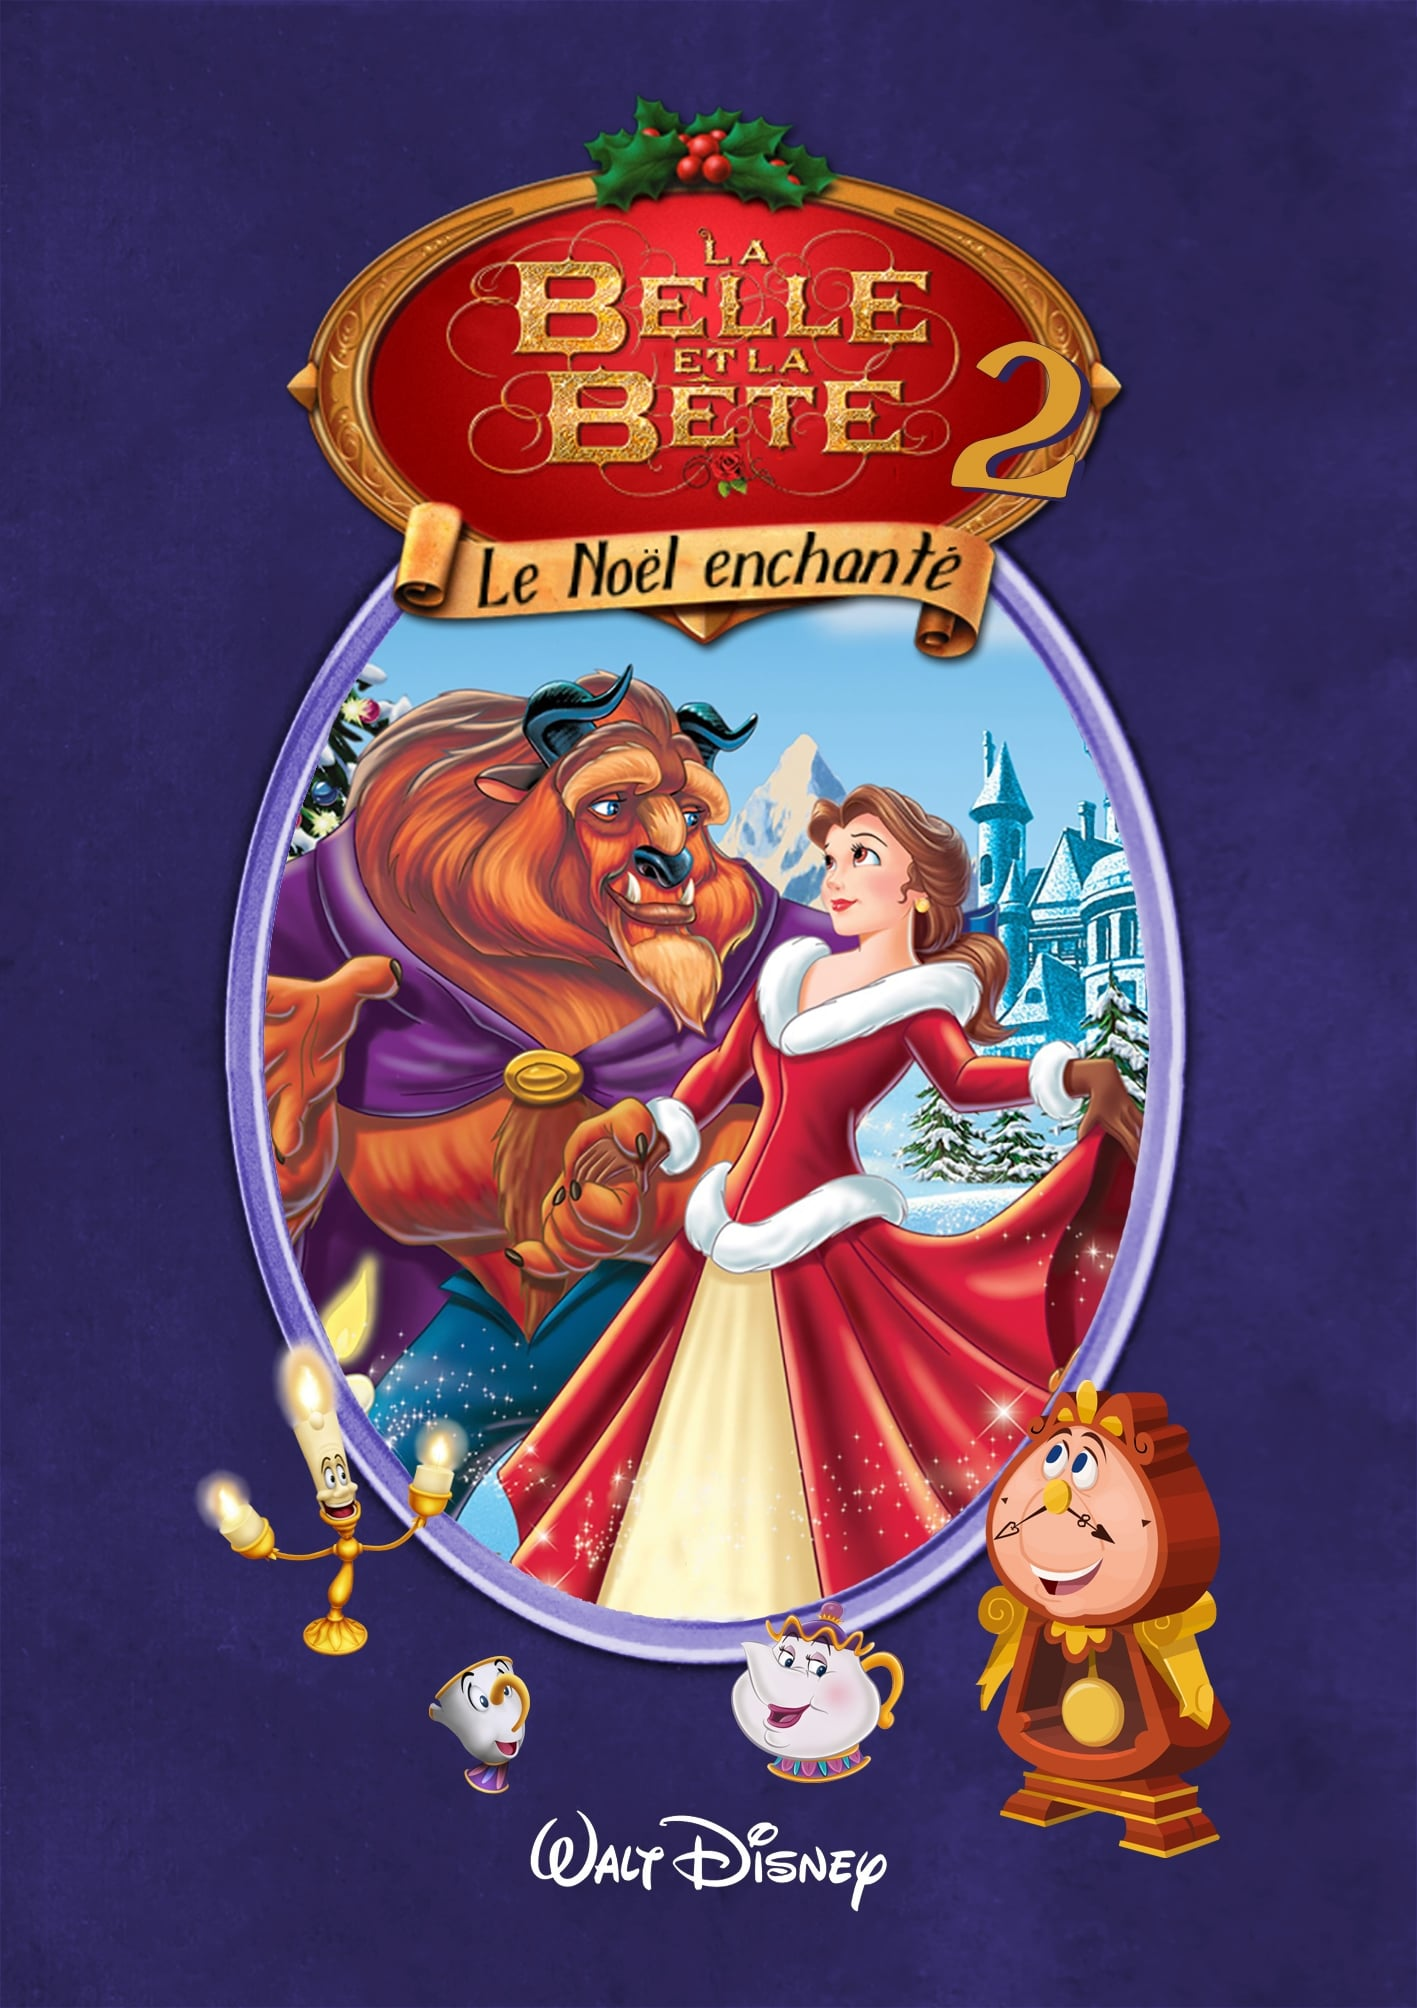 La-Belle-Et-la-Bte-Un-Nol-Enchant-Beauty-And-the-Beast-2-199